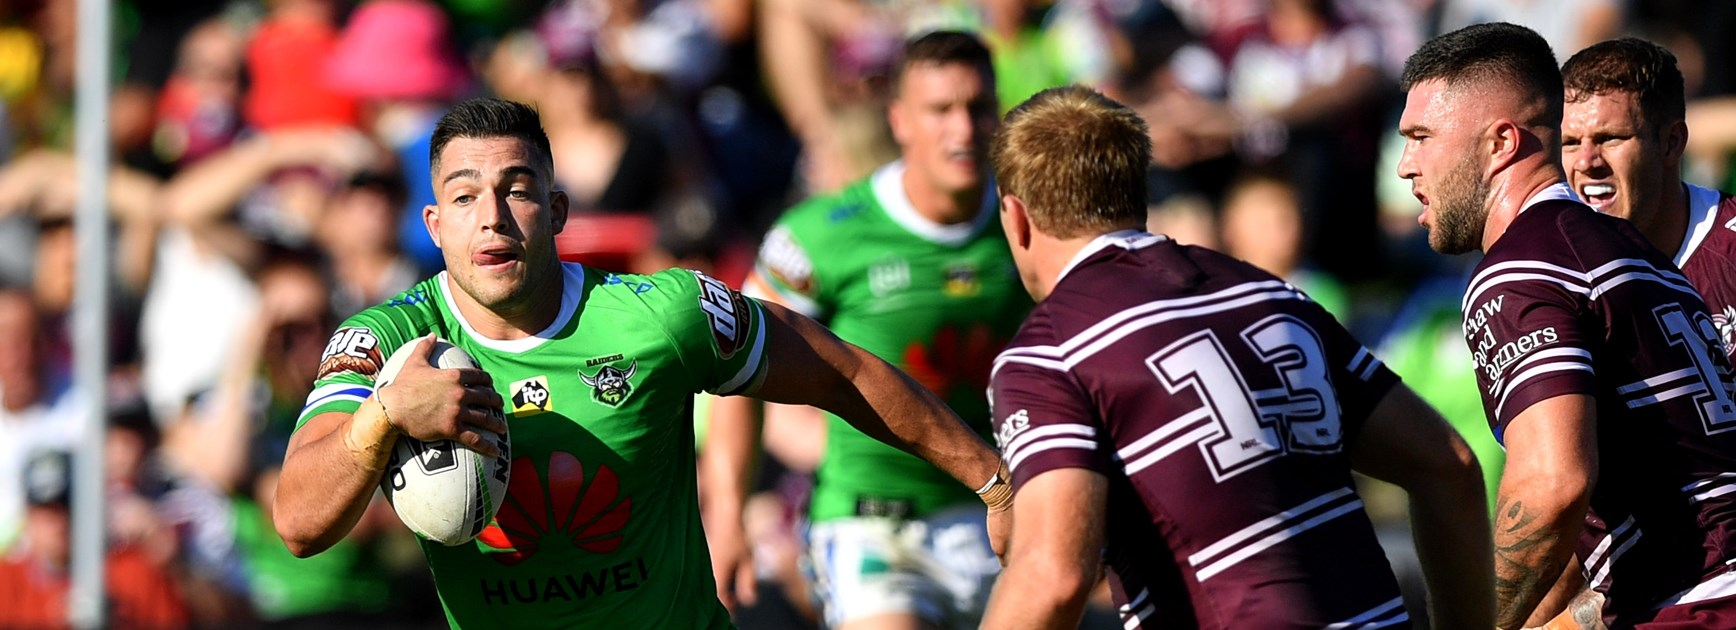 Raiders beaten by Manly at Lottoland